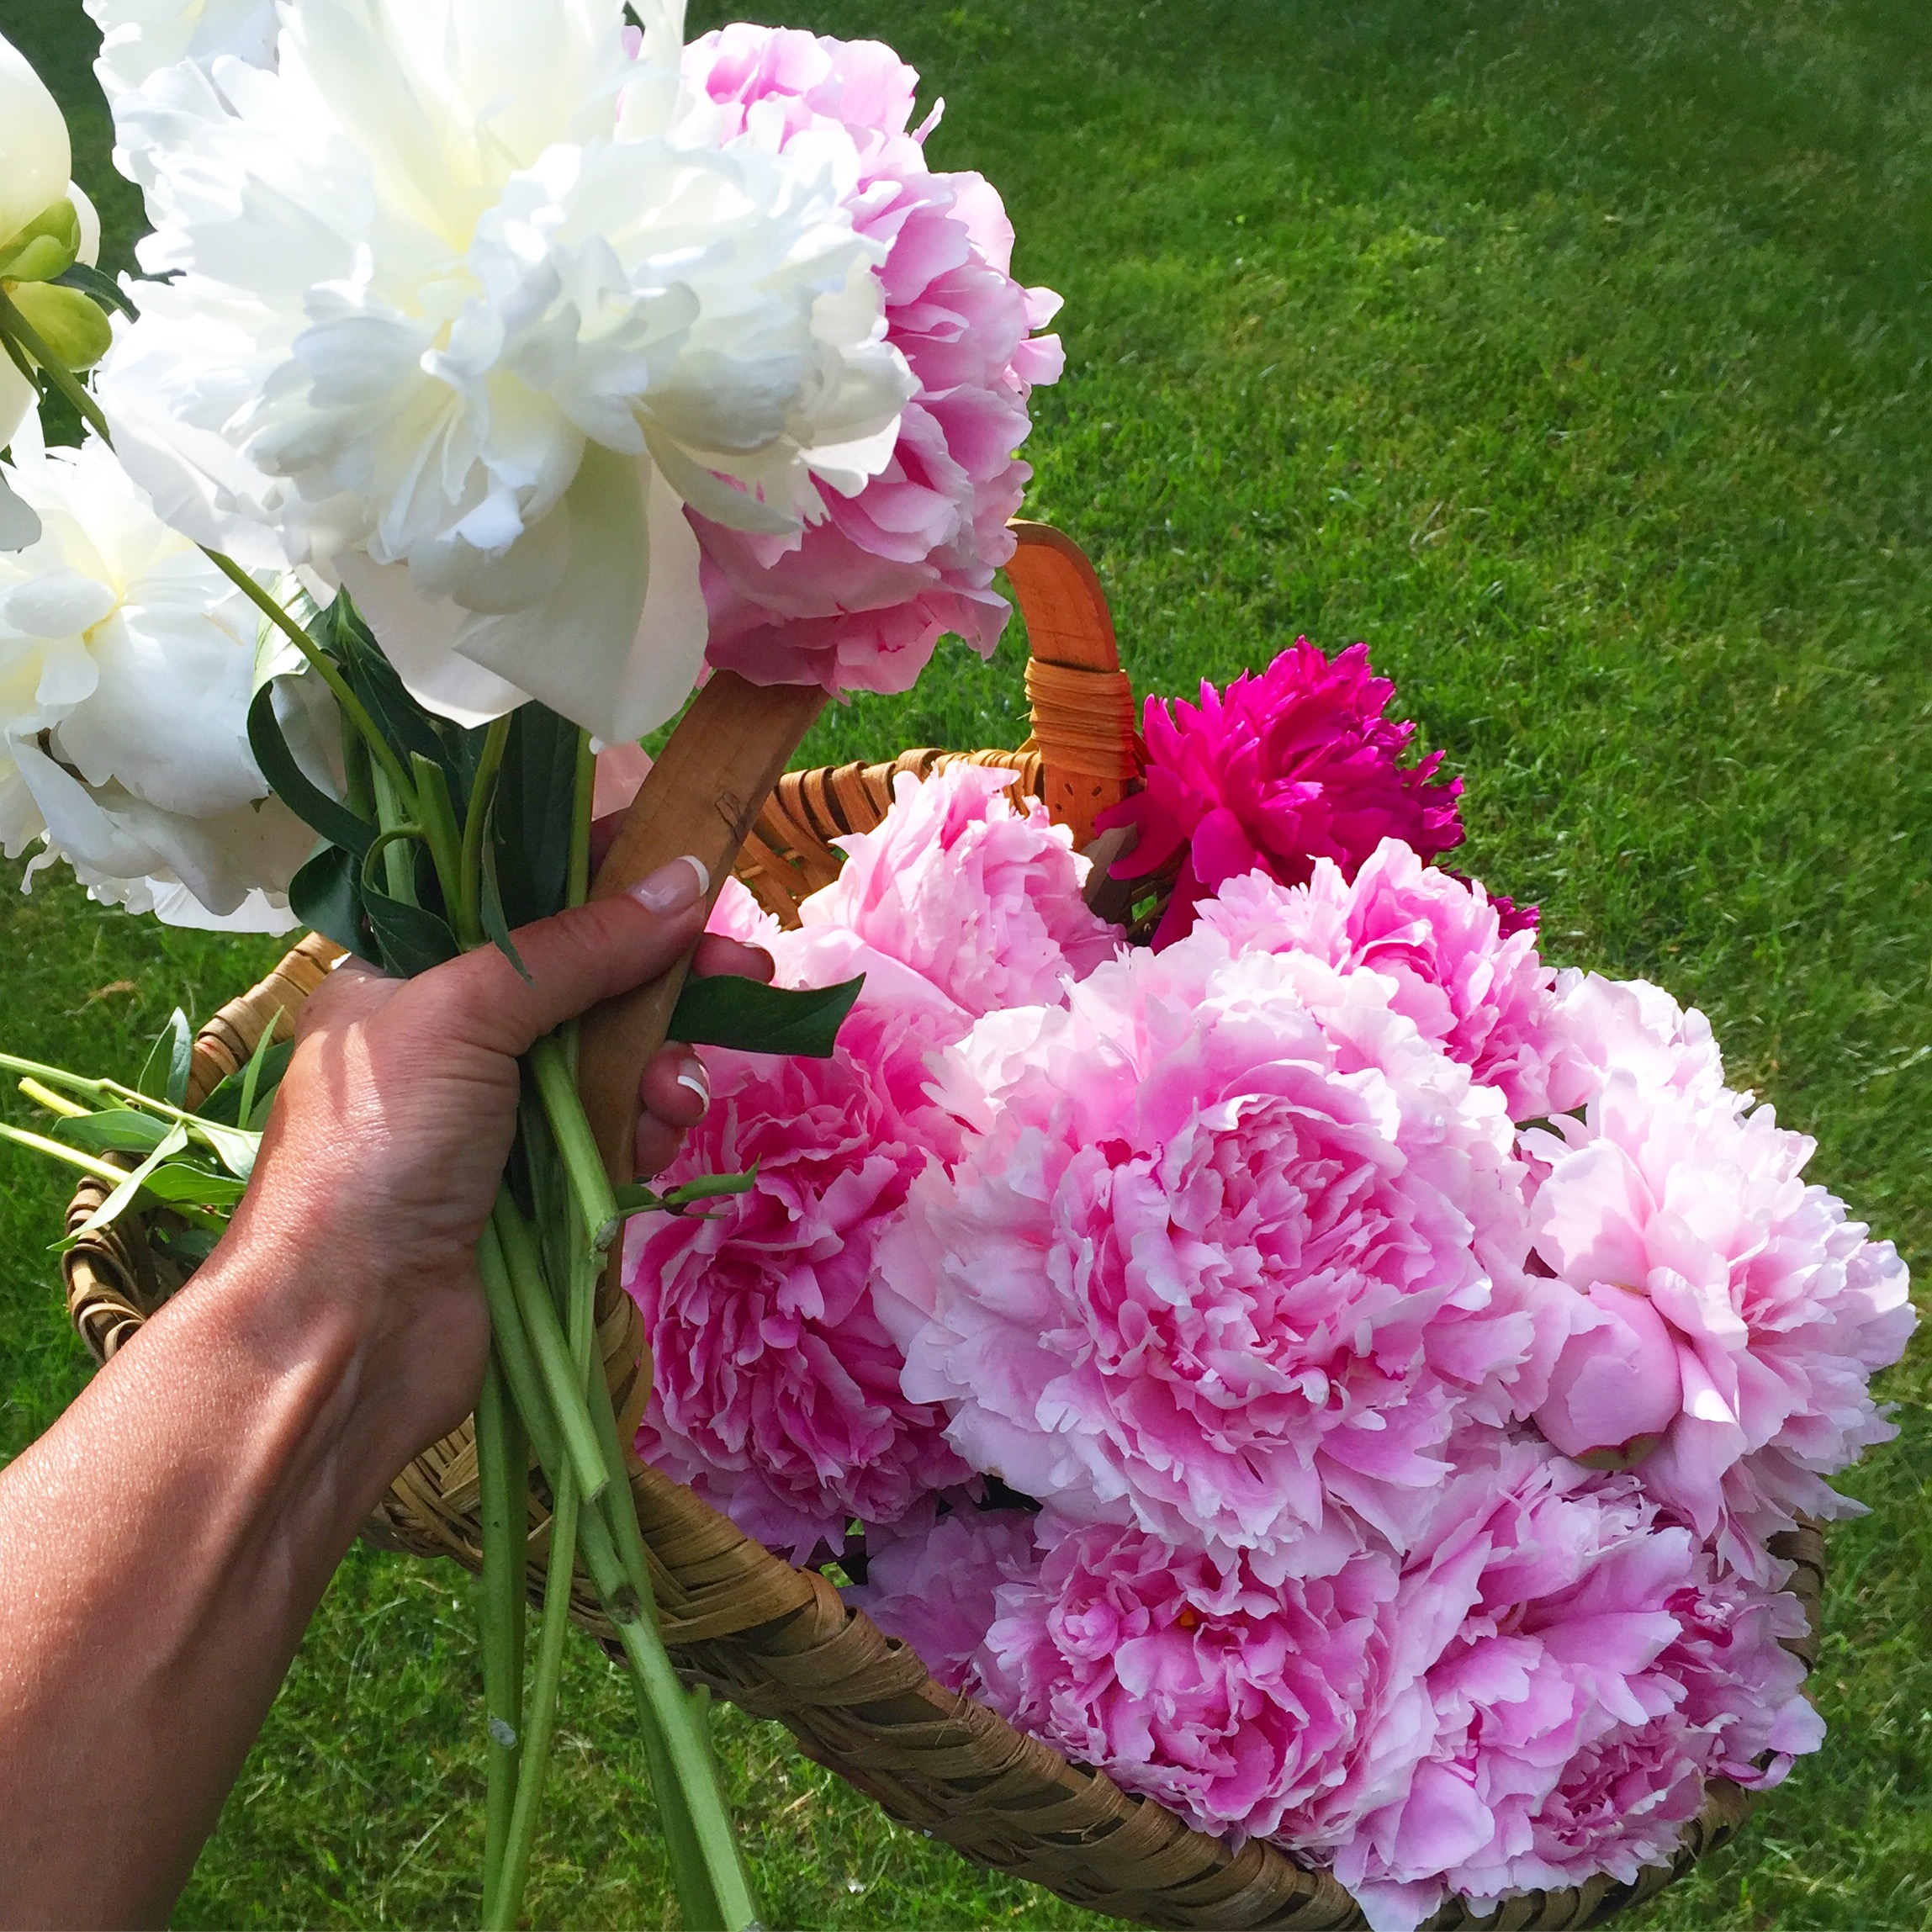 Cutting pink and white peonies in the garden.jpg